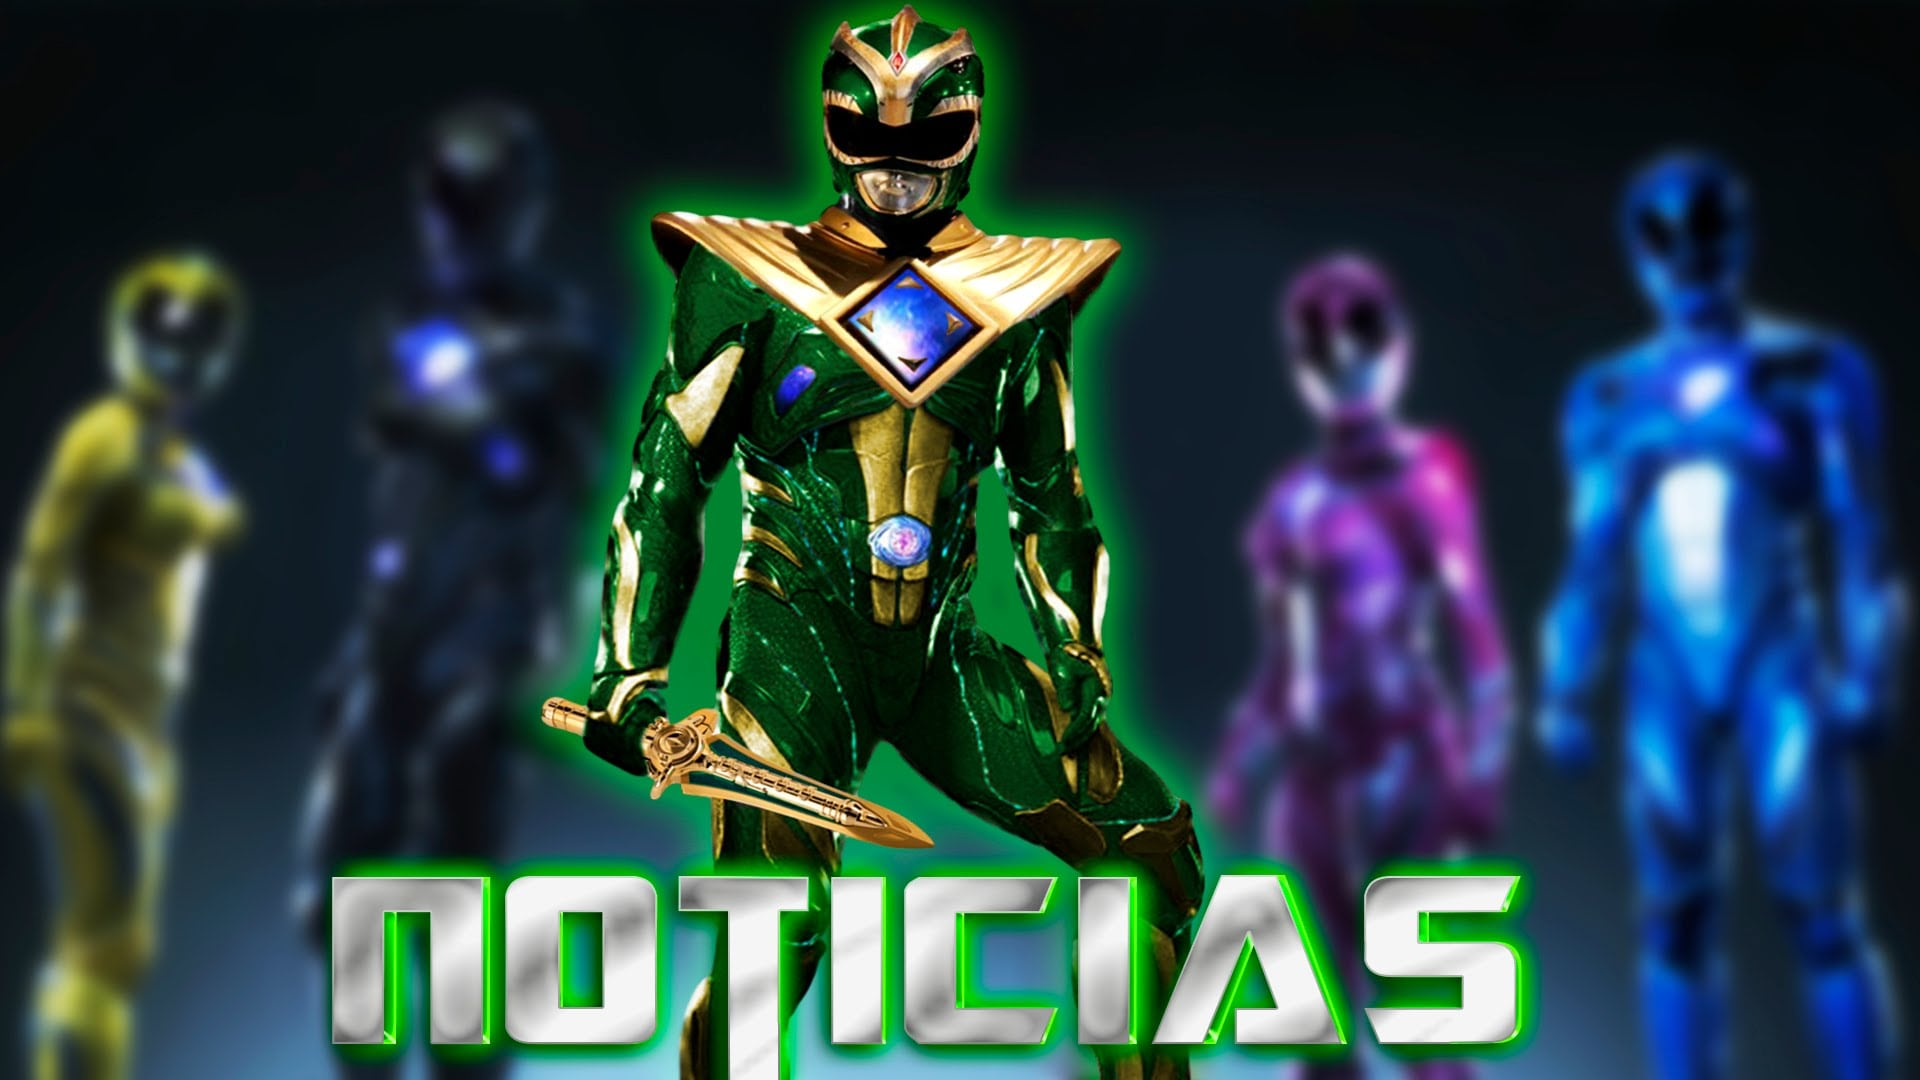 Power Rangers Screensavers Background